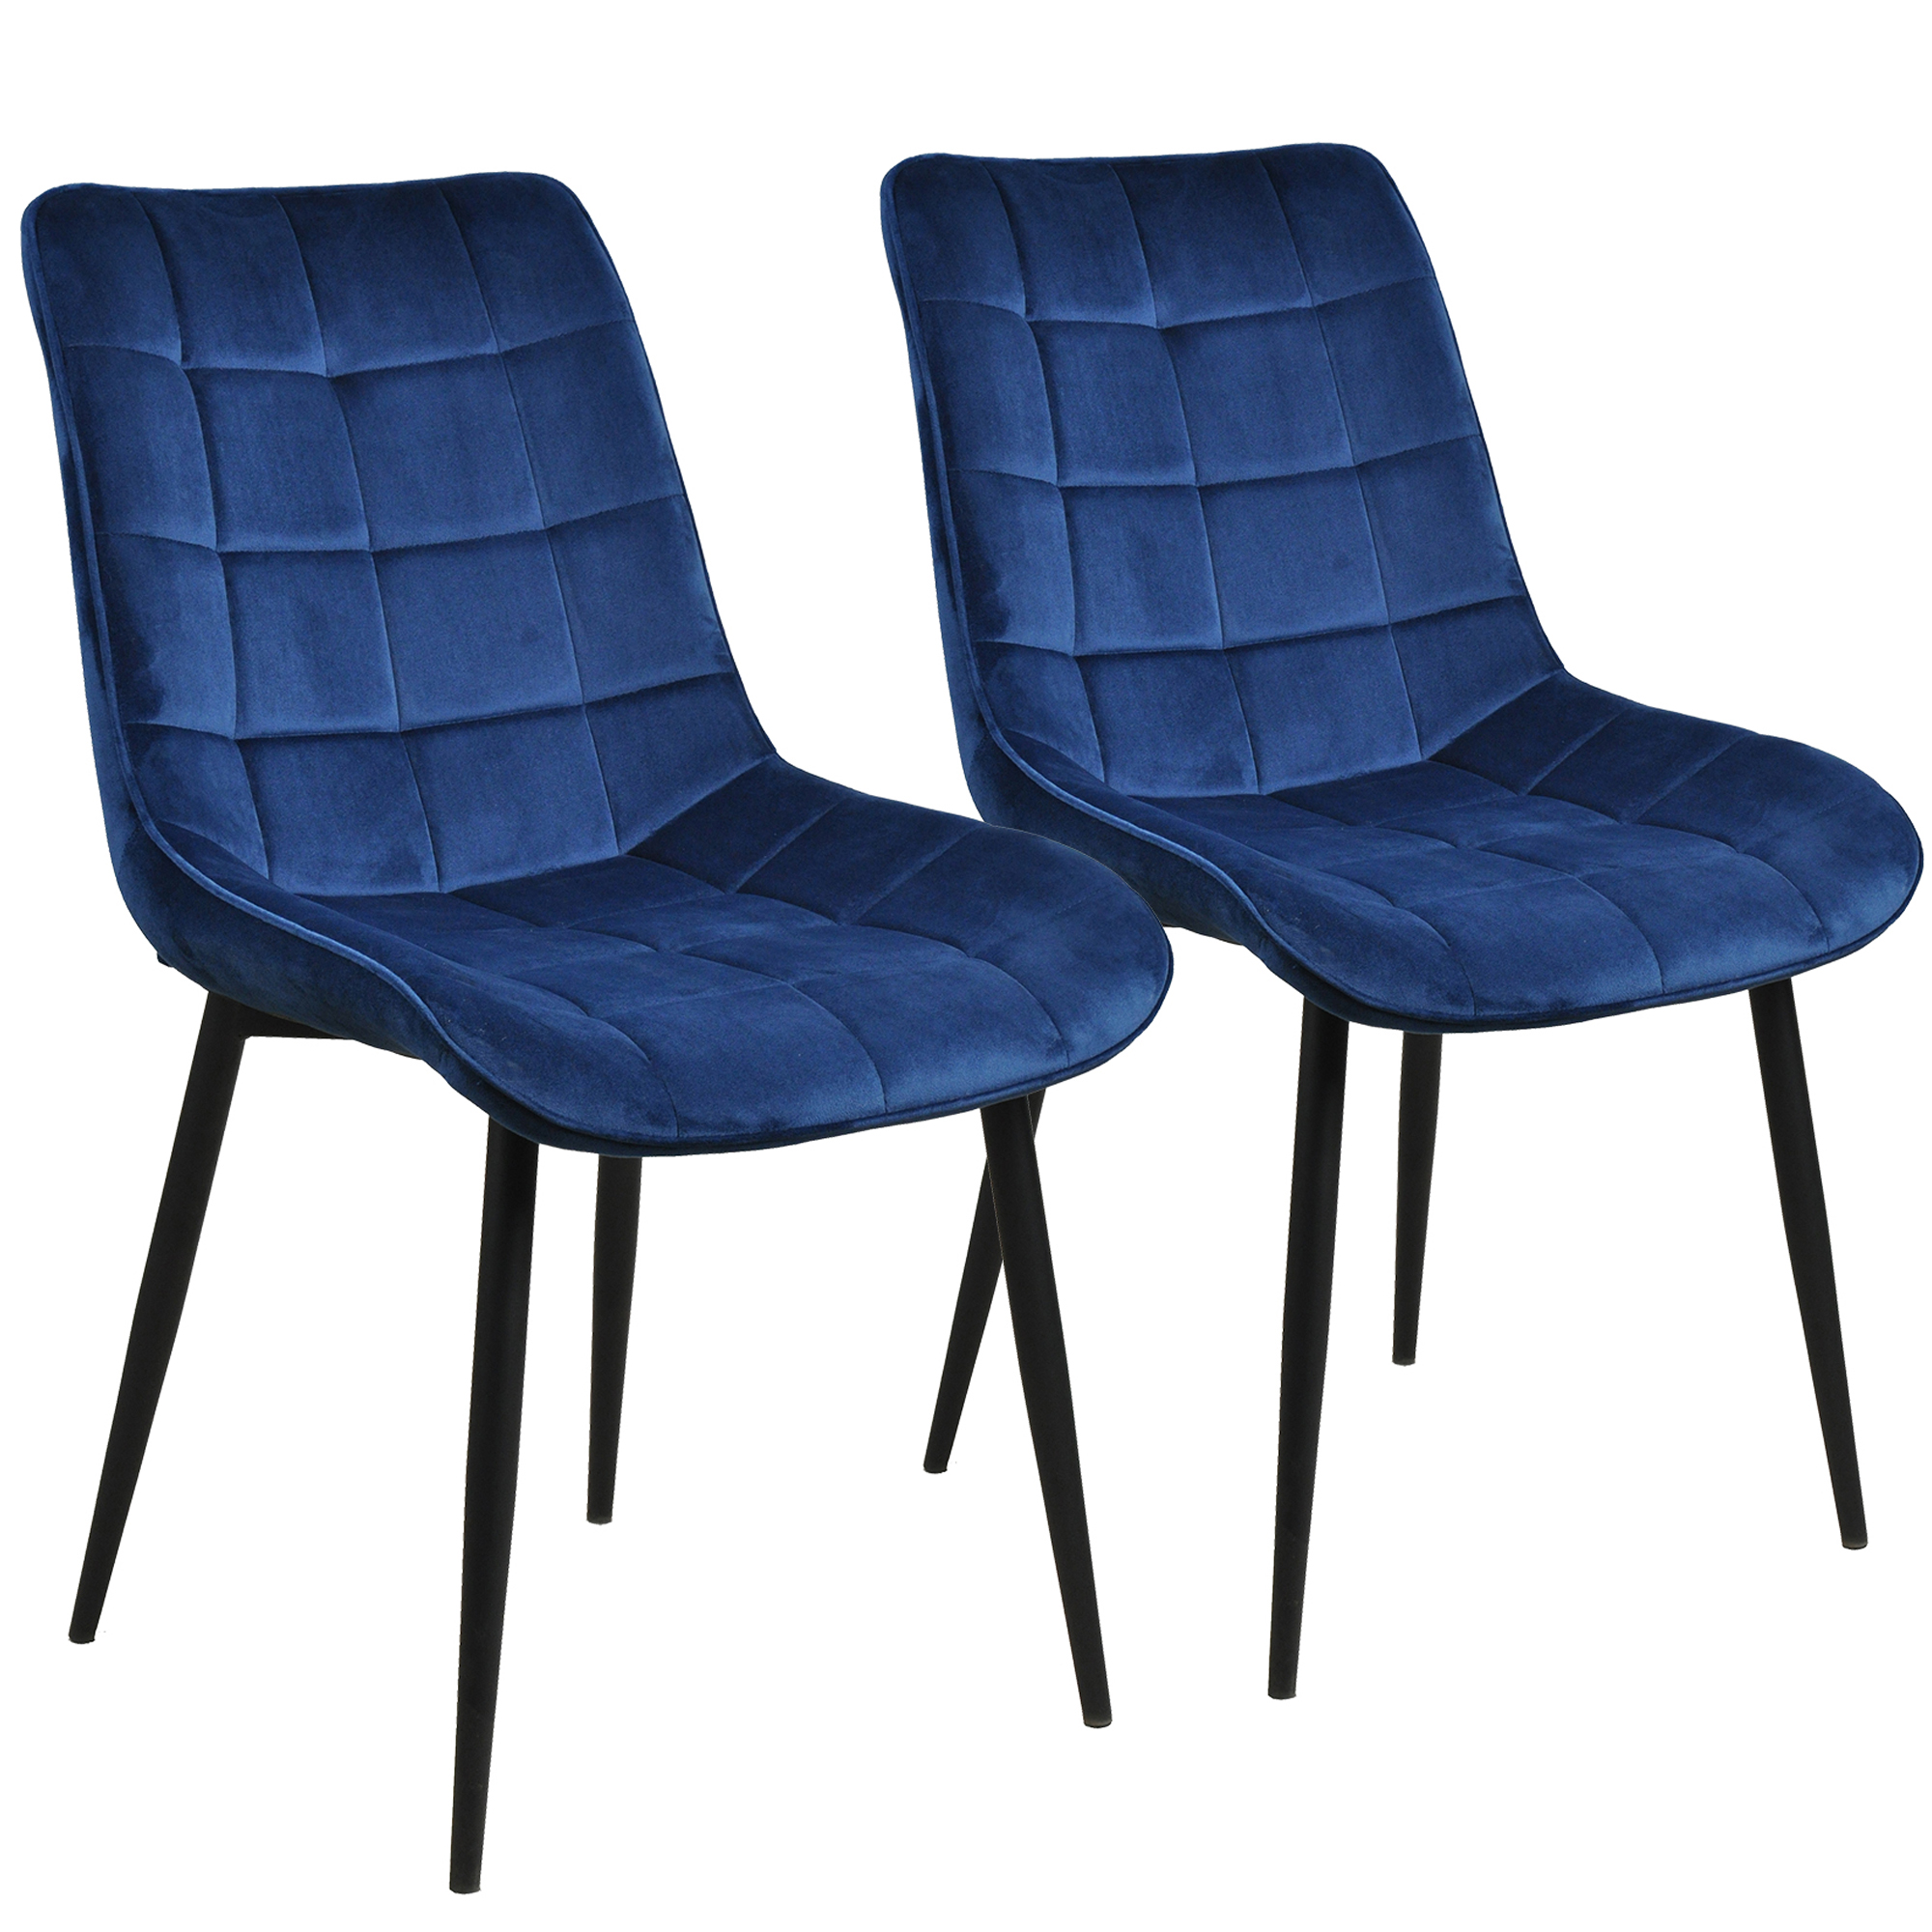 2 Pieces Waiting Room Chair, Heavy Duty Solid Wood Velvet ...